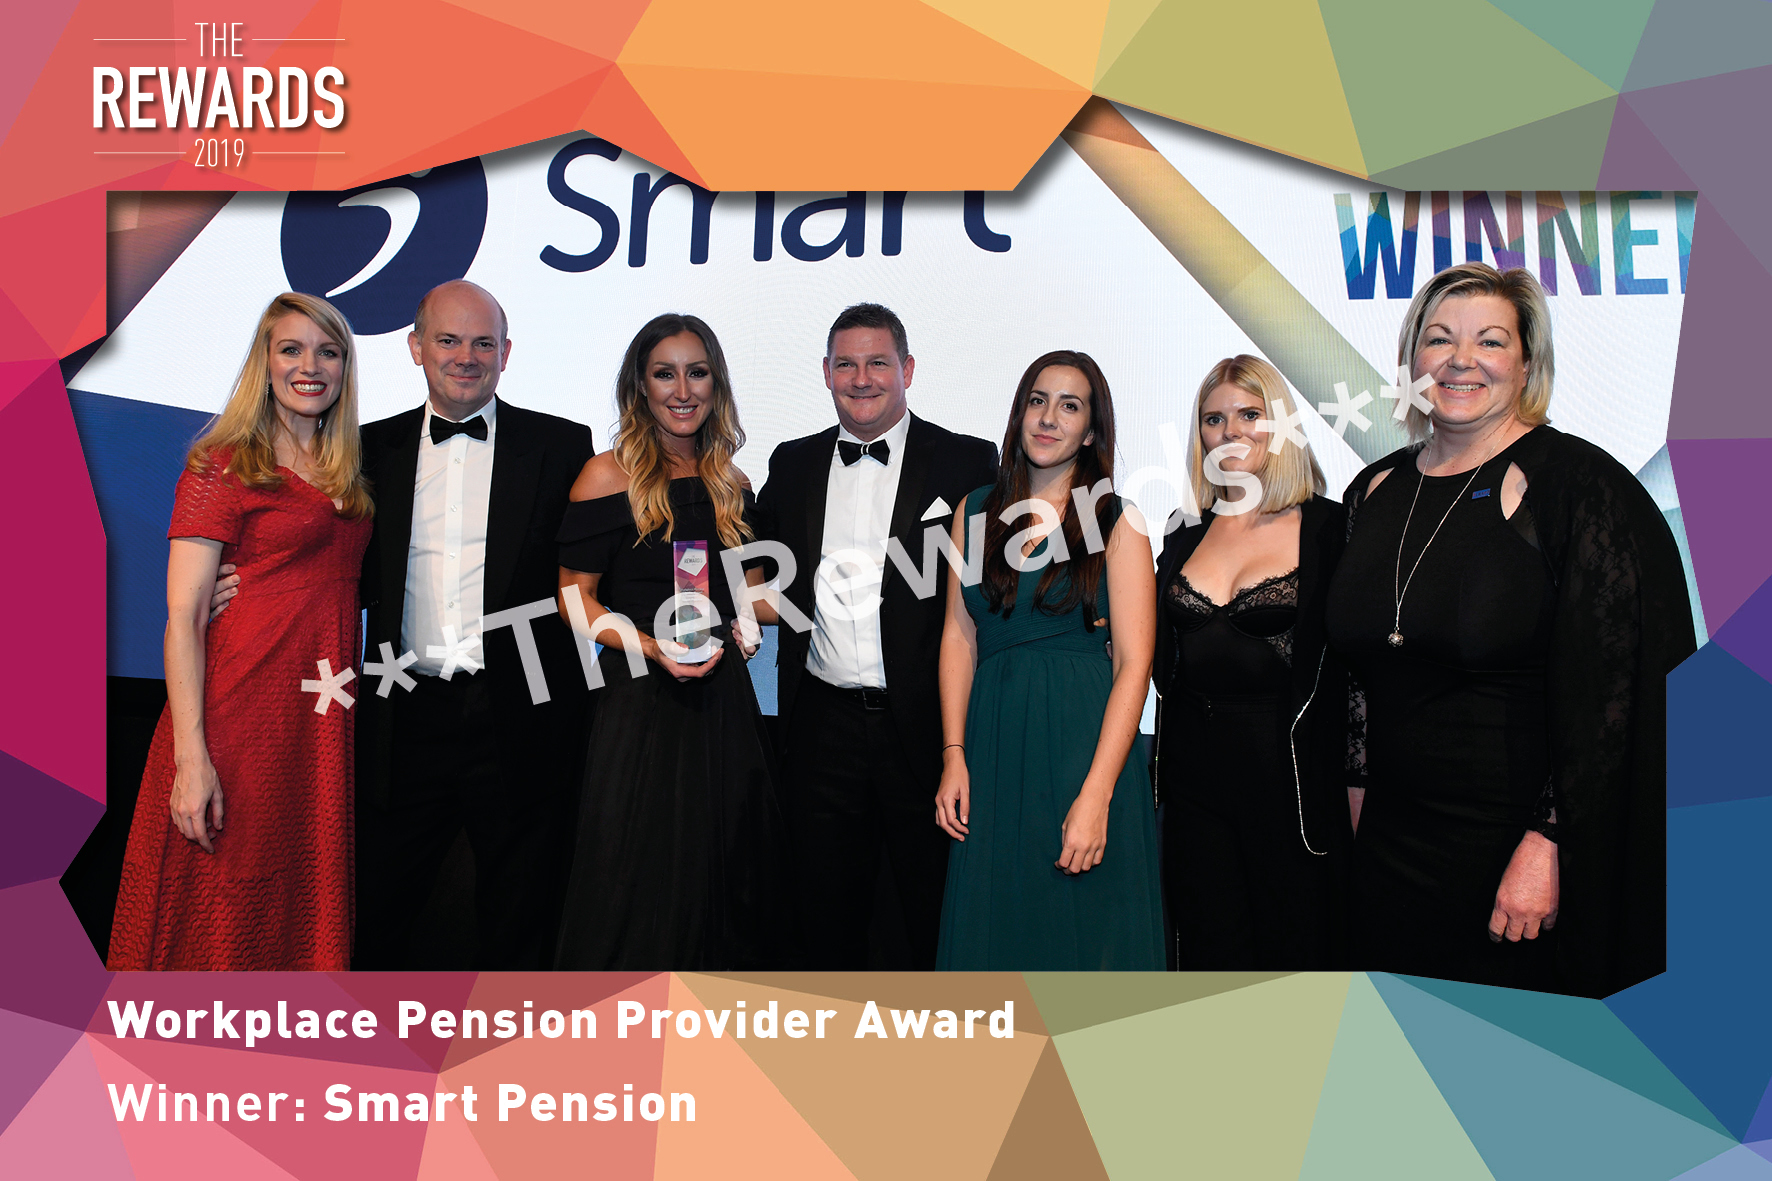 Workplace Pension Provider Award